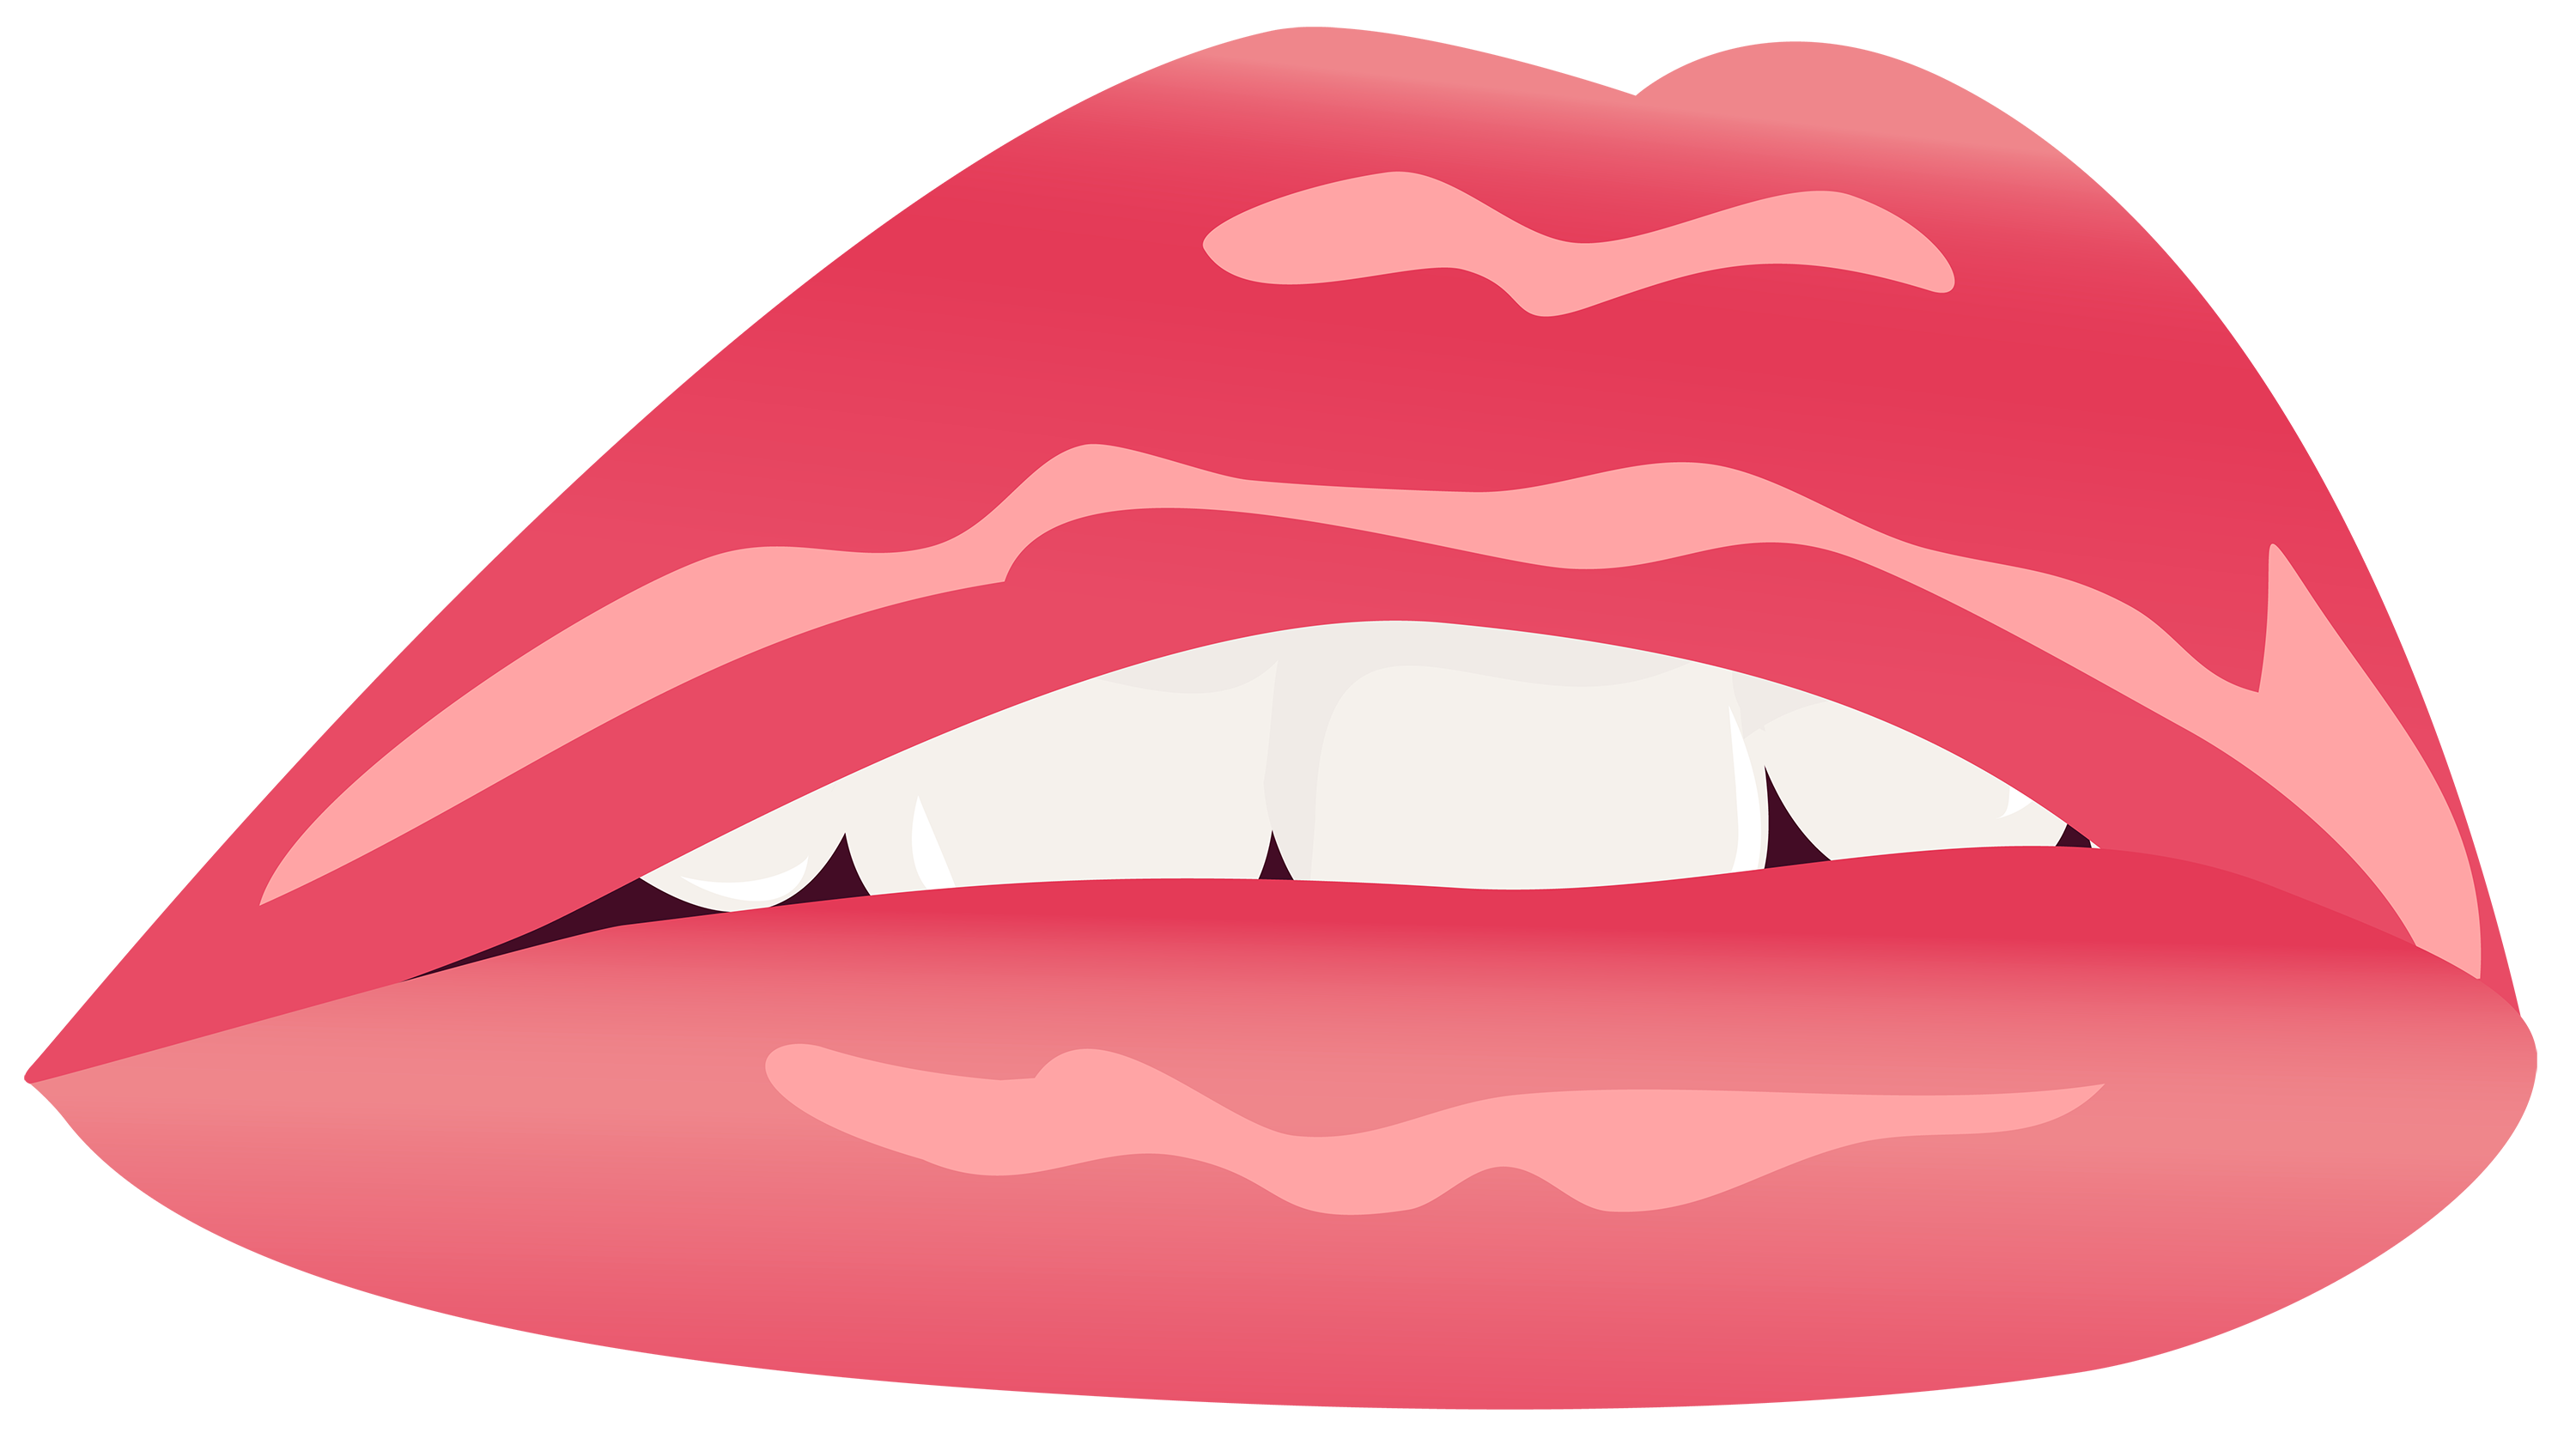 3000x1676 Smile Lips Clipart Free Images 2 2